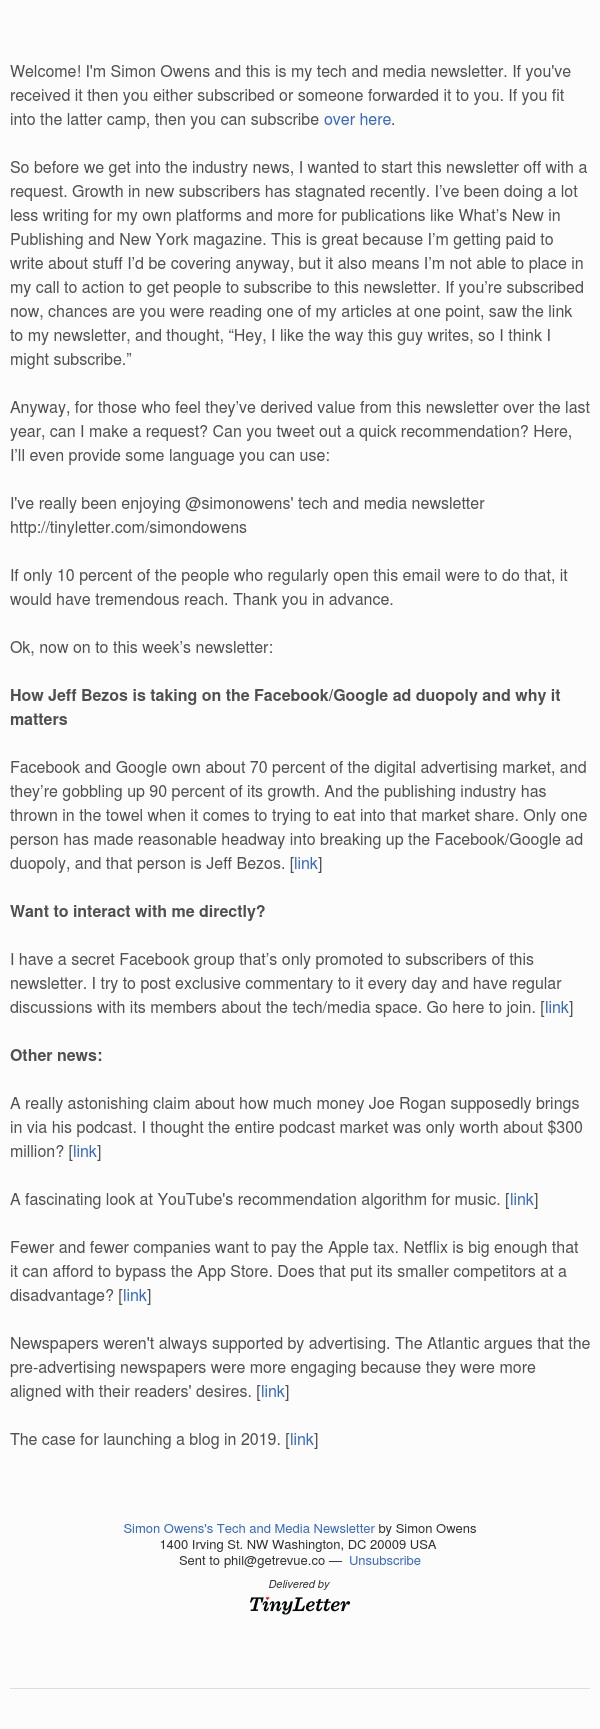 How Jeff Bezos is taking on the Facebook/Google ad duopoly